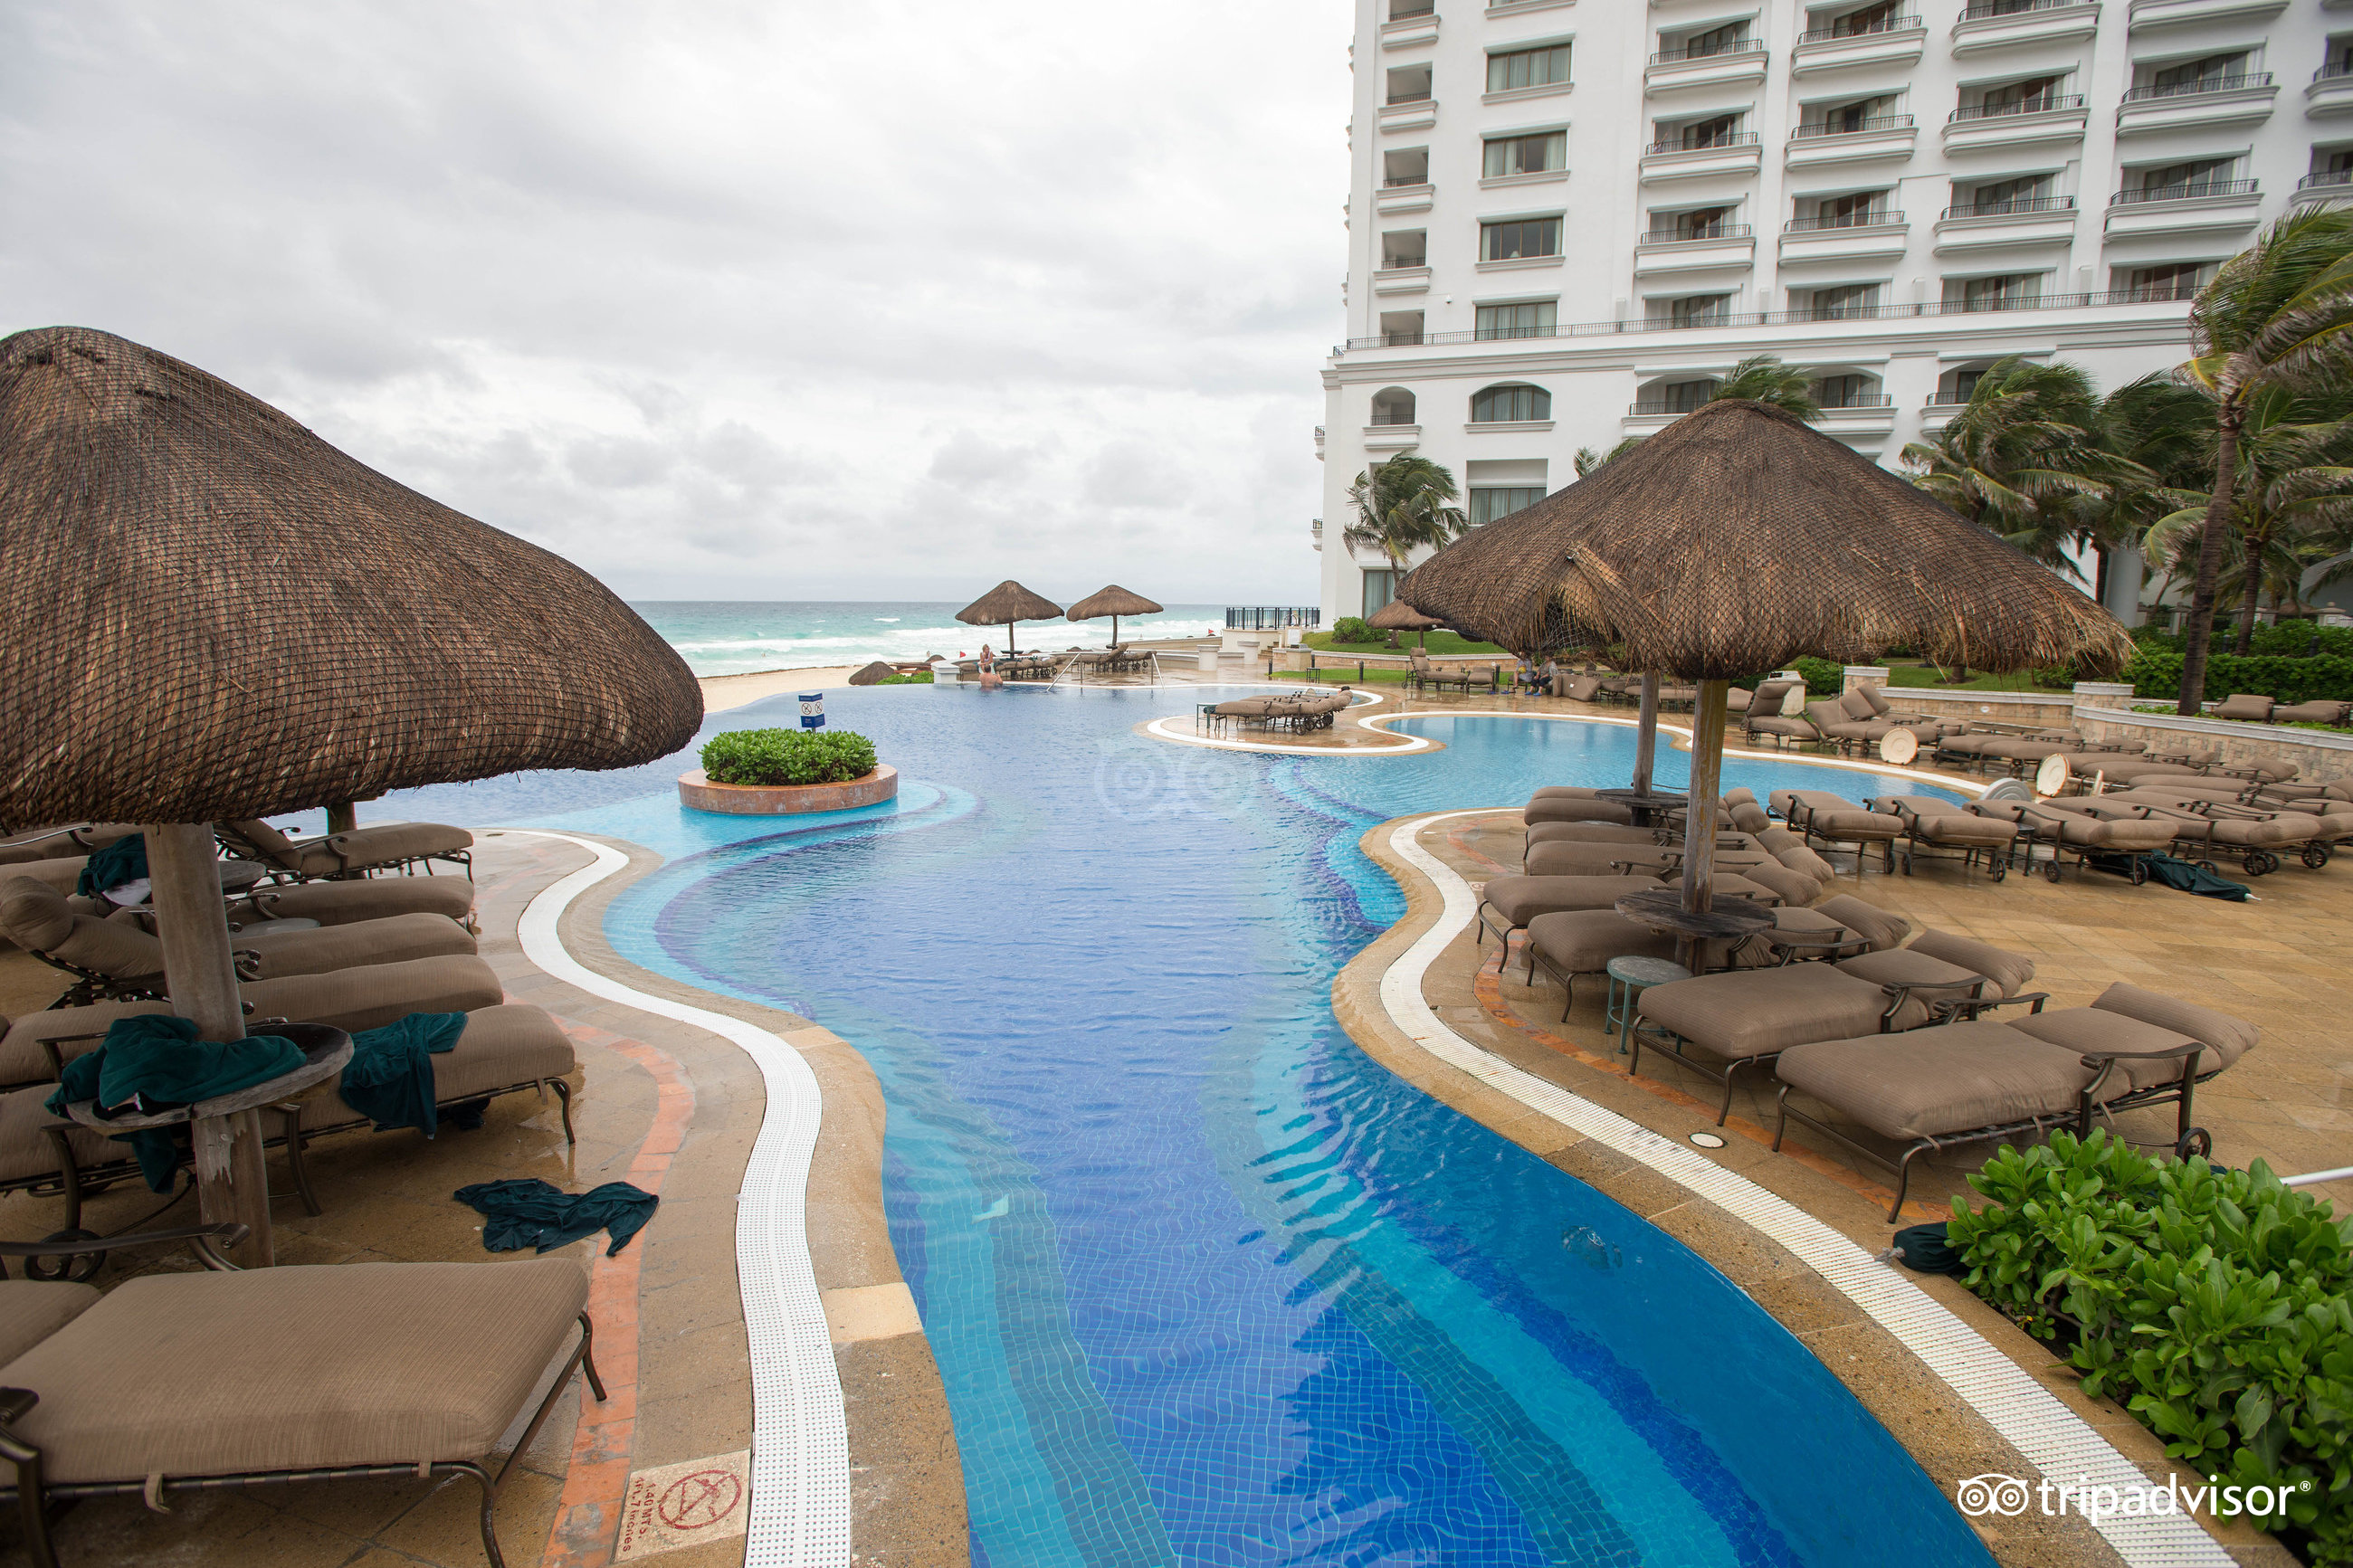 Cancun an all suites resort 2017 review family vacation critic - Cancun An All Suites Resort 2017 Review Family Vacation Critic 4